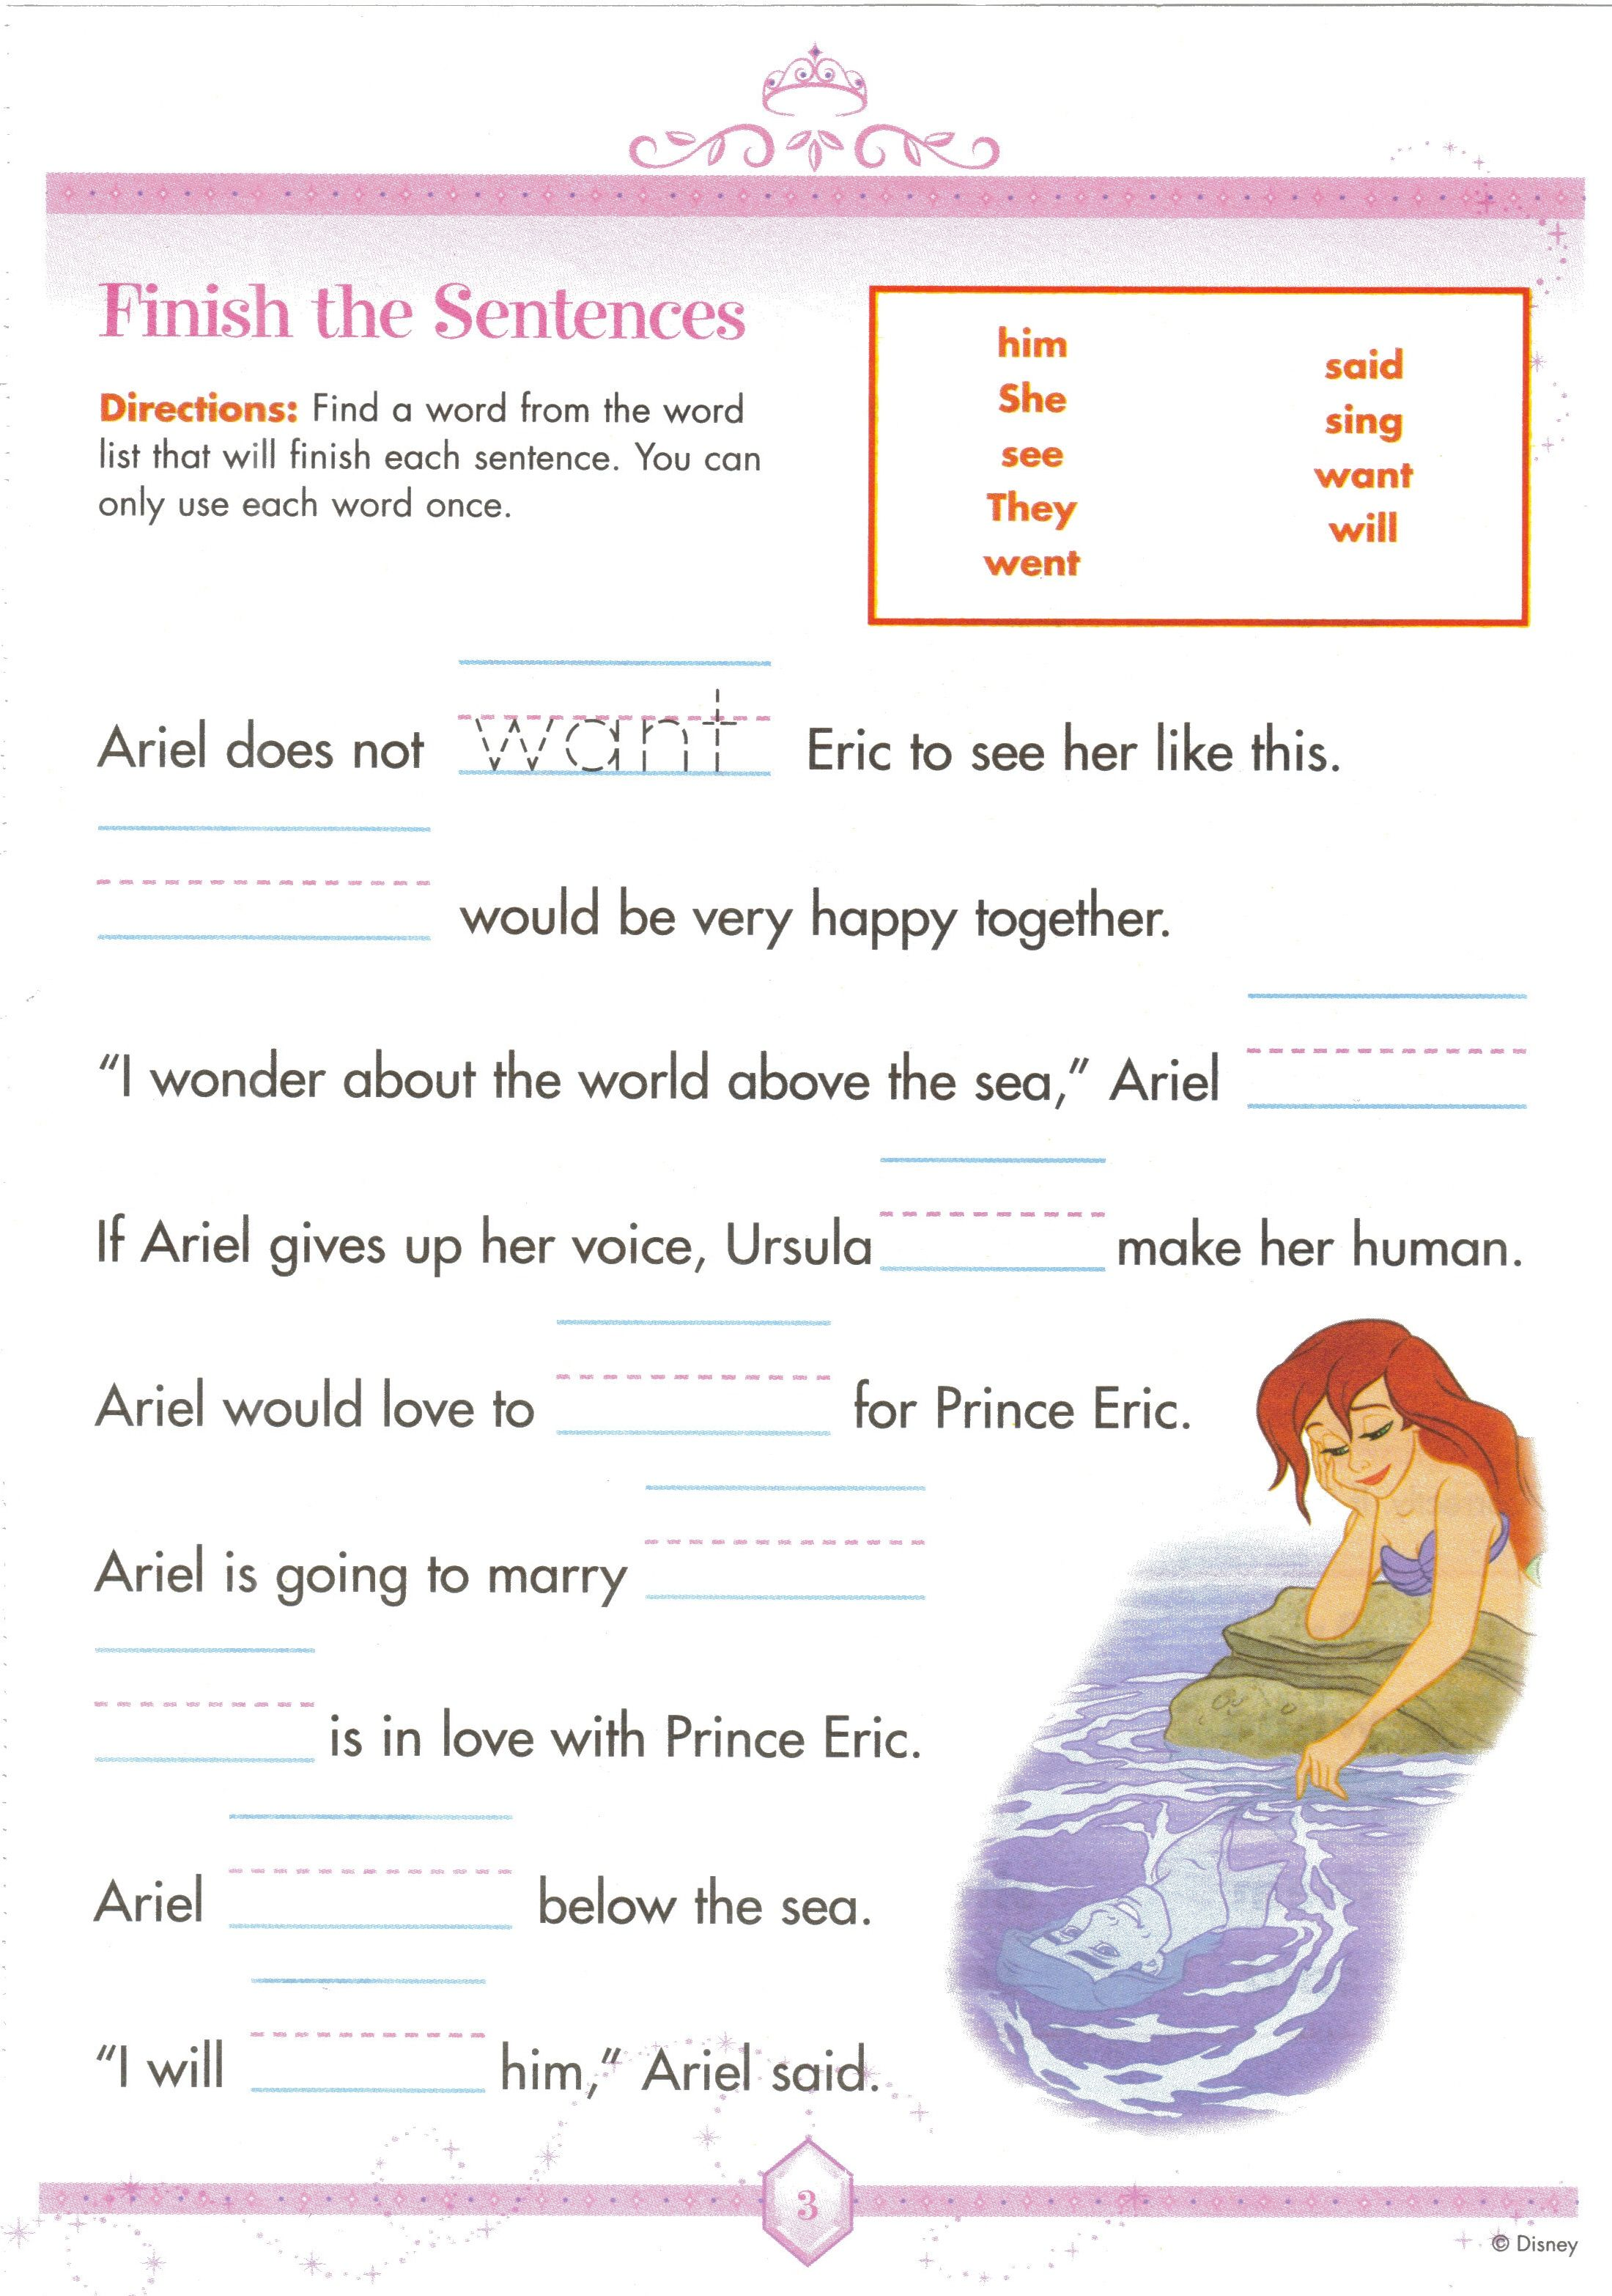 Weirdmailus  Gorgeous  Images About Worksheets On Pinterest  Fun Facts For Kids  With Fair  Images About Worksheets On Pinterest  Fun Facts For Kids Earth Day Worksheets And Jungles With Appealing Weather Station Model Worksheet Also Sports Worksheets In Addition Season Worksheets And The Gift Of The Magi Worksheet As Well As Writing And Naming Binary Compounds Worksheet Answers Additionally Px Back And Biceps Worksheet From Pinterestcom With Weirdmailus  Fair  Images About Worksheets On Pinterest  Fun Facts For Kids  With Appealing  Images About Worksheets On Pinterest  Fun Facts For Kids Earth Day Worksheets And Jungles And Gorgeous Weather Station Model Worksheet Also Sports Worksheets In Addition Season Worksheets From Pinterestcom